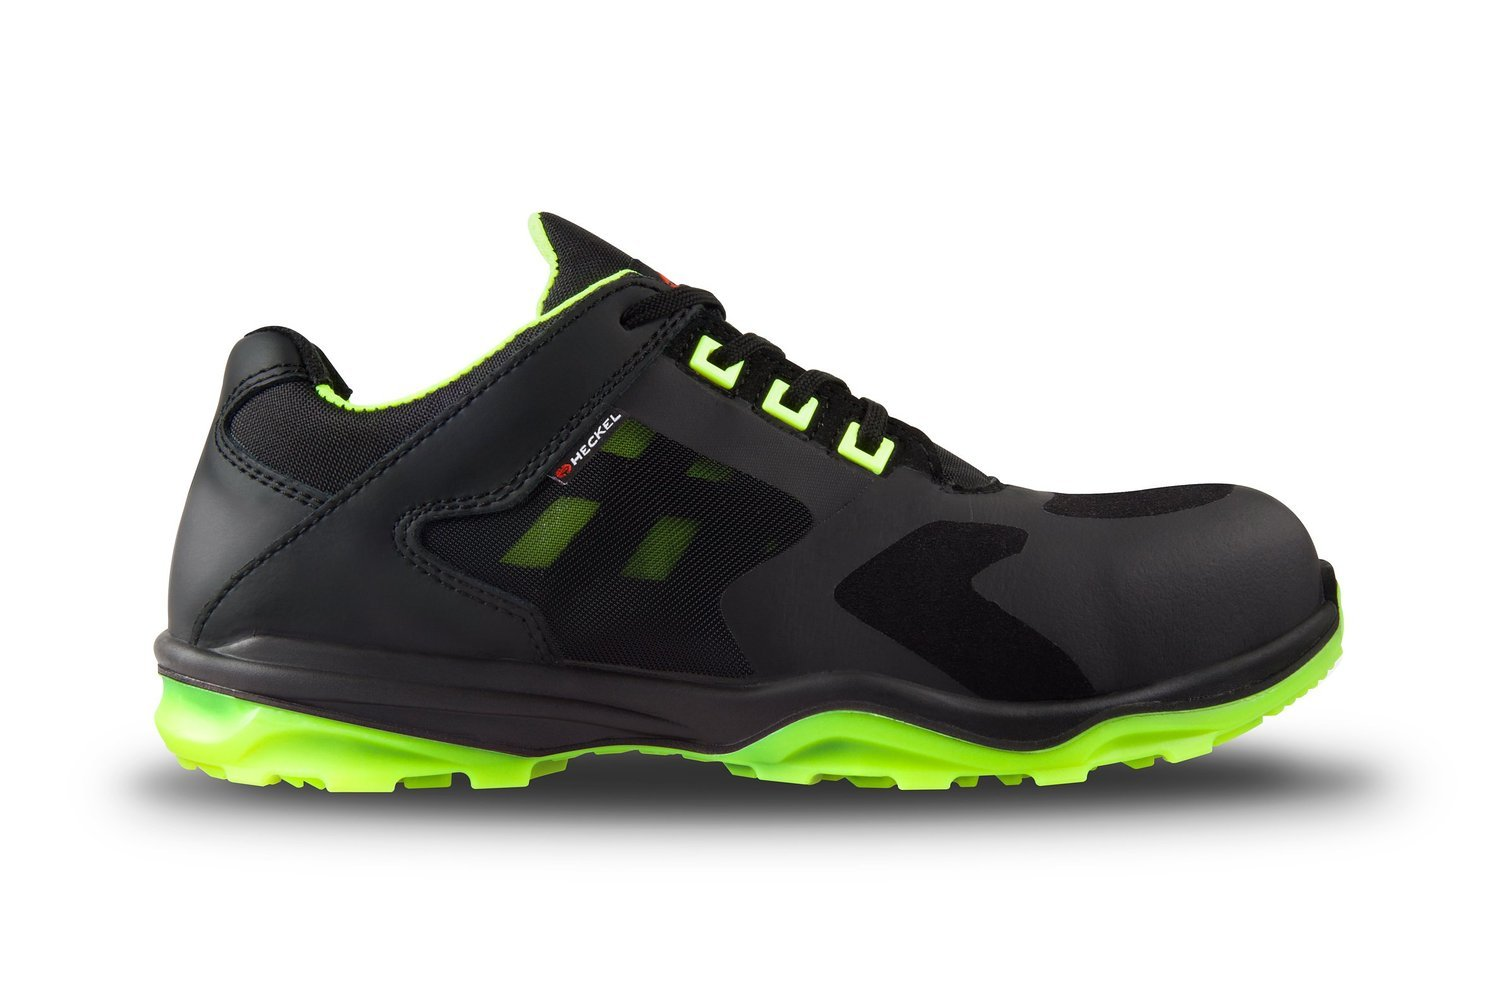 Heckel RUN-R ACE S1P Zapatillas de seguridad, sin metal, muy ligeras, varias tallas disponibles, color verde, talla 40: Amazon.es: Amazon.es